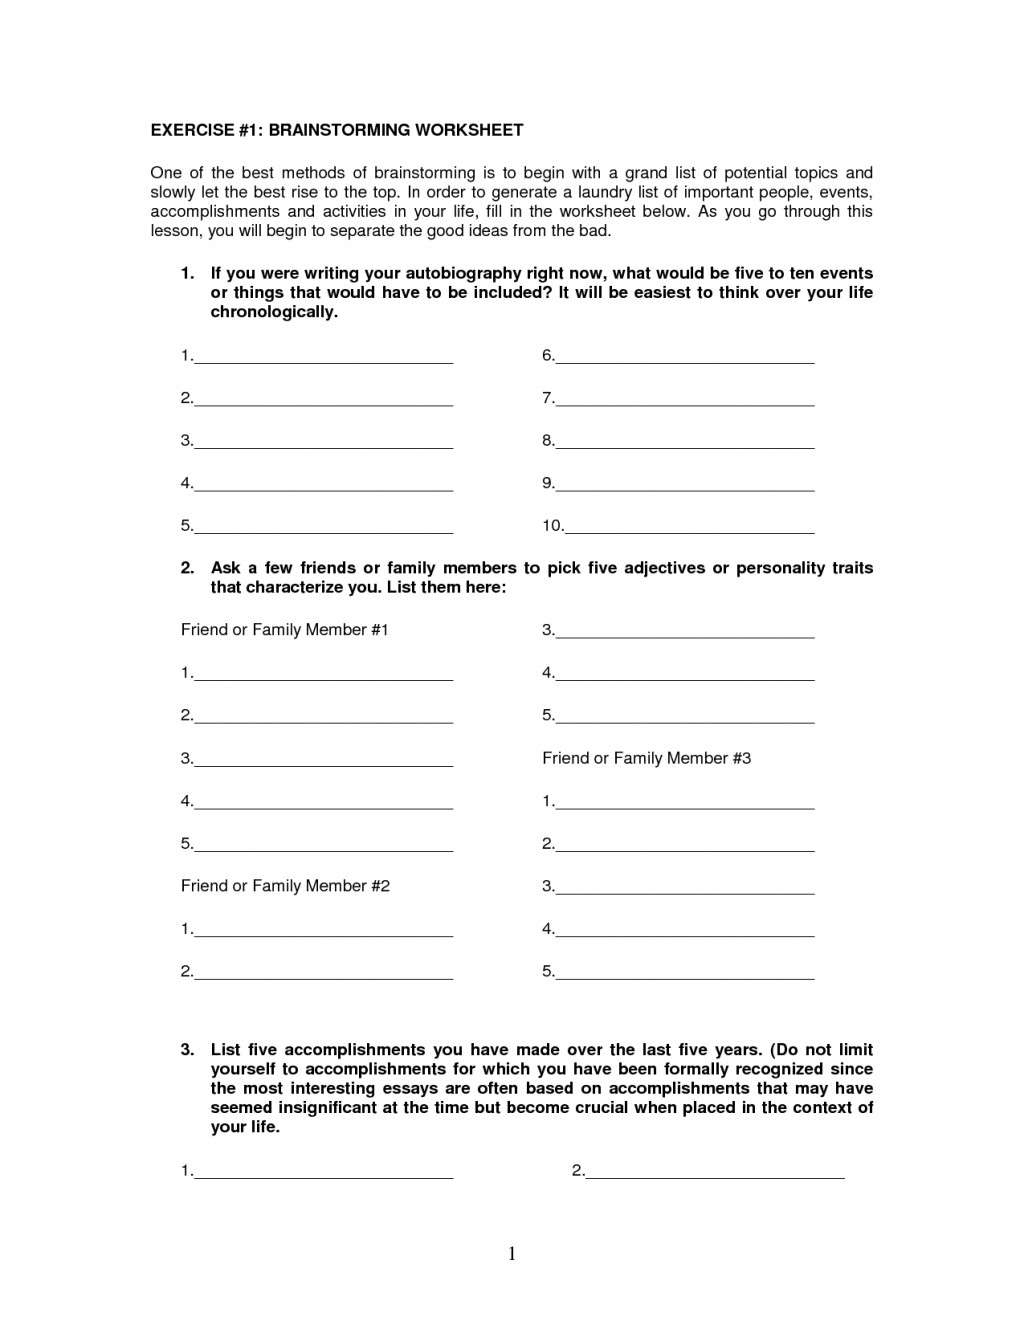 008 Essay Brainstorming Worksheet 583086 Outstanding Writing Techniques Topics College Large